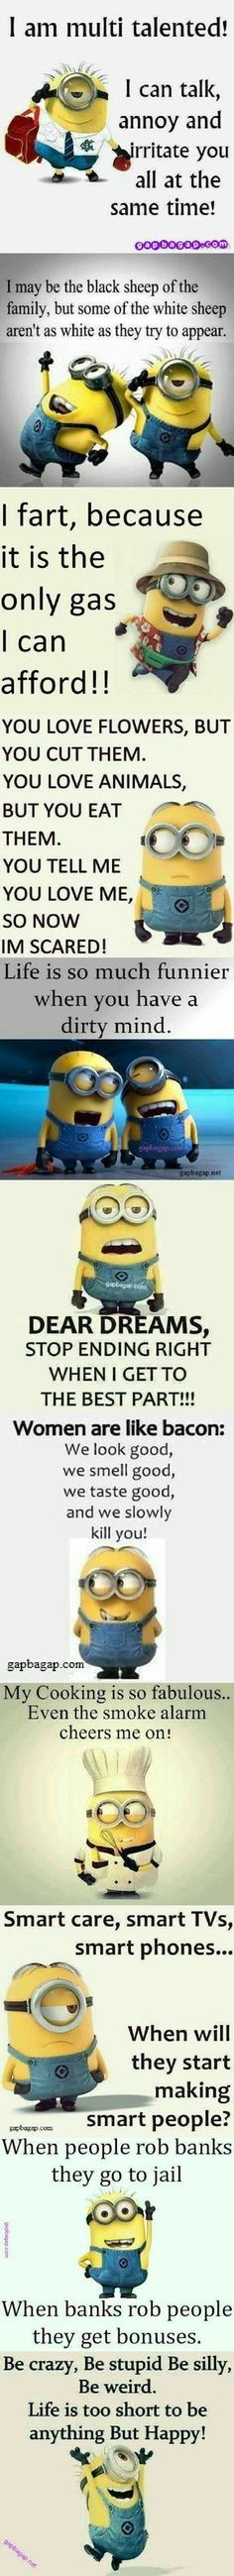 Top 10 Funny Minion Memes... - Minions, Quotes, Sayings... - 10, Funny, funny minion quotes, Memes, Minion, Minion Quote Of The Day, Minions, Quotes, sayings, Top - Minion-Quotes.com